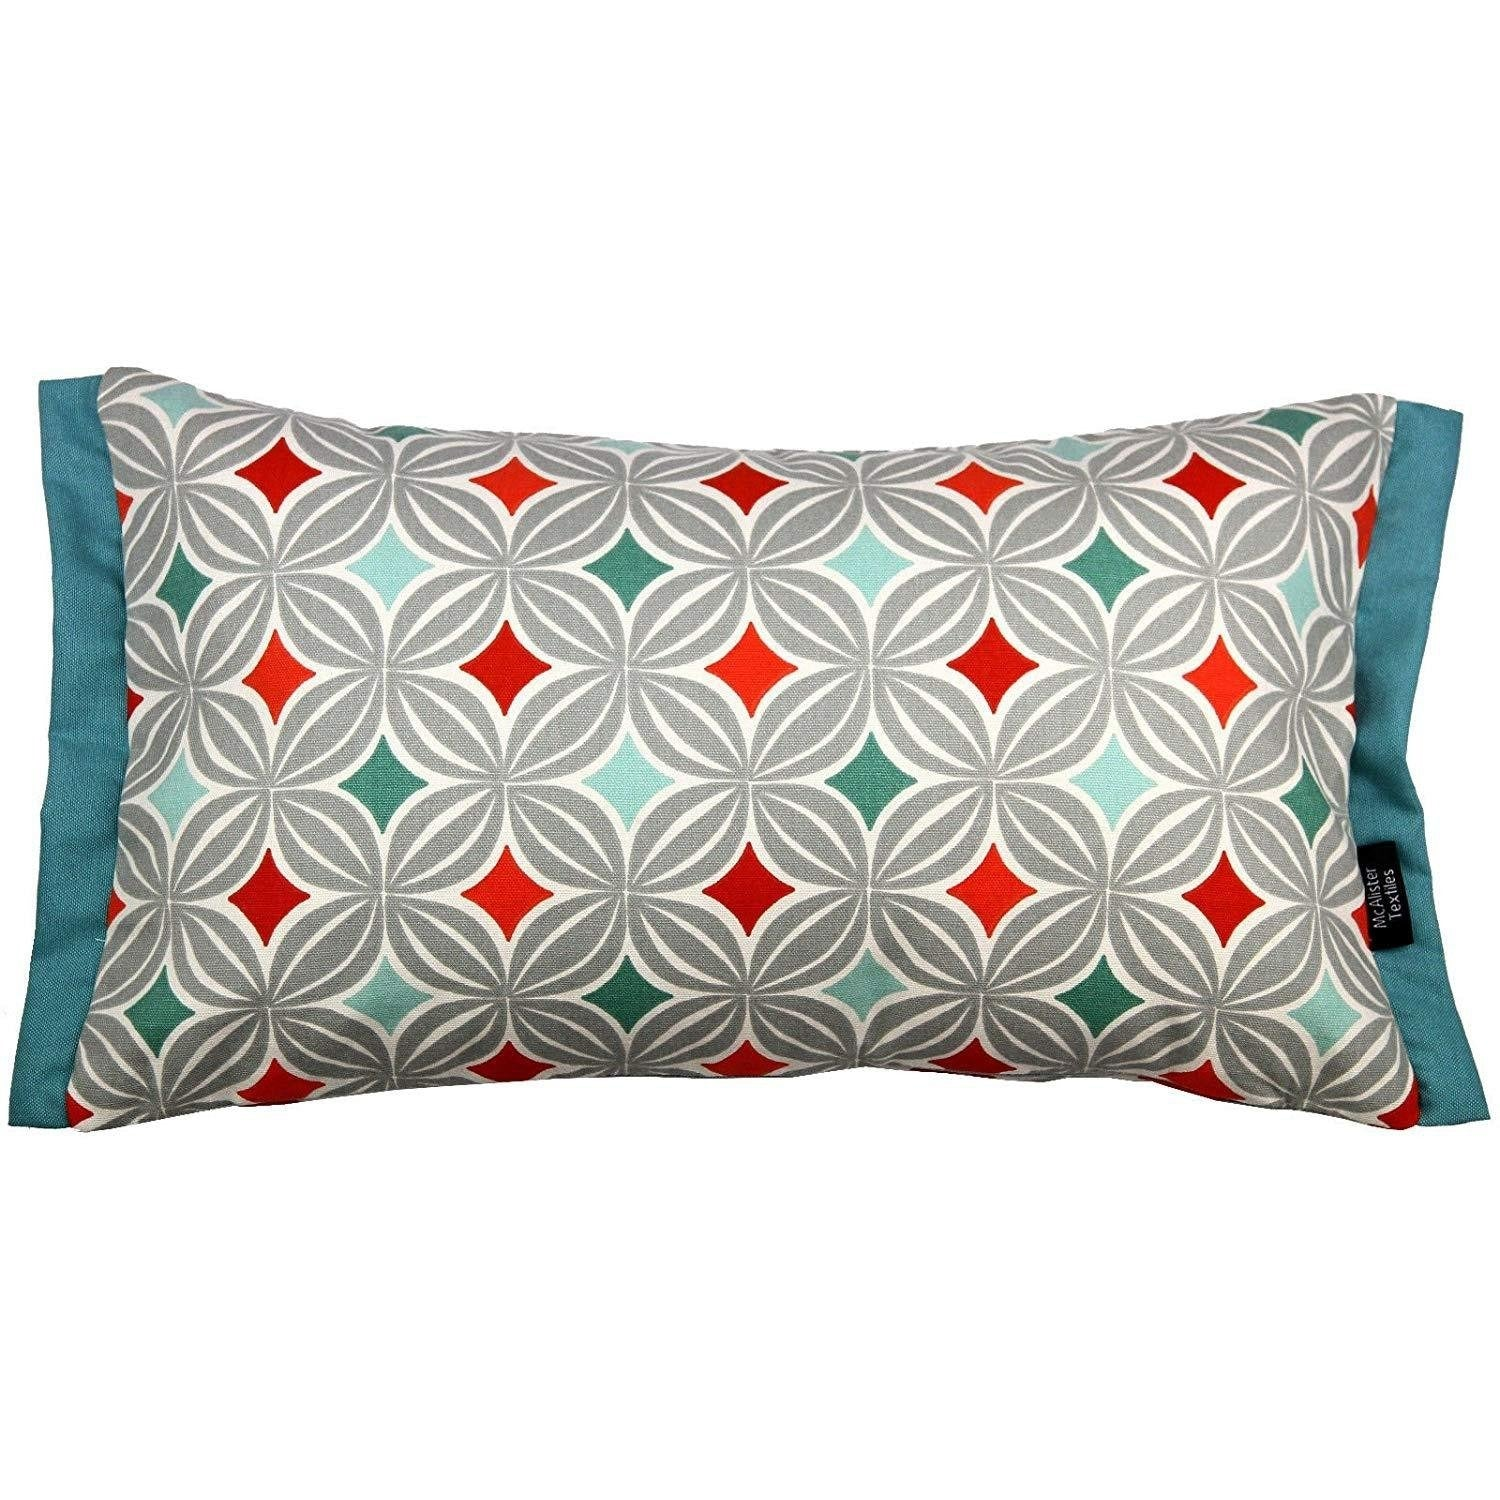 McAlister Textiles Laila Cotton Print Burnt Orange Pillow Pillow Cover Only 50cm x 30cm